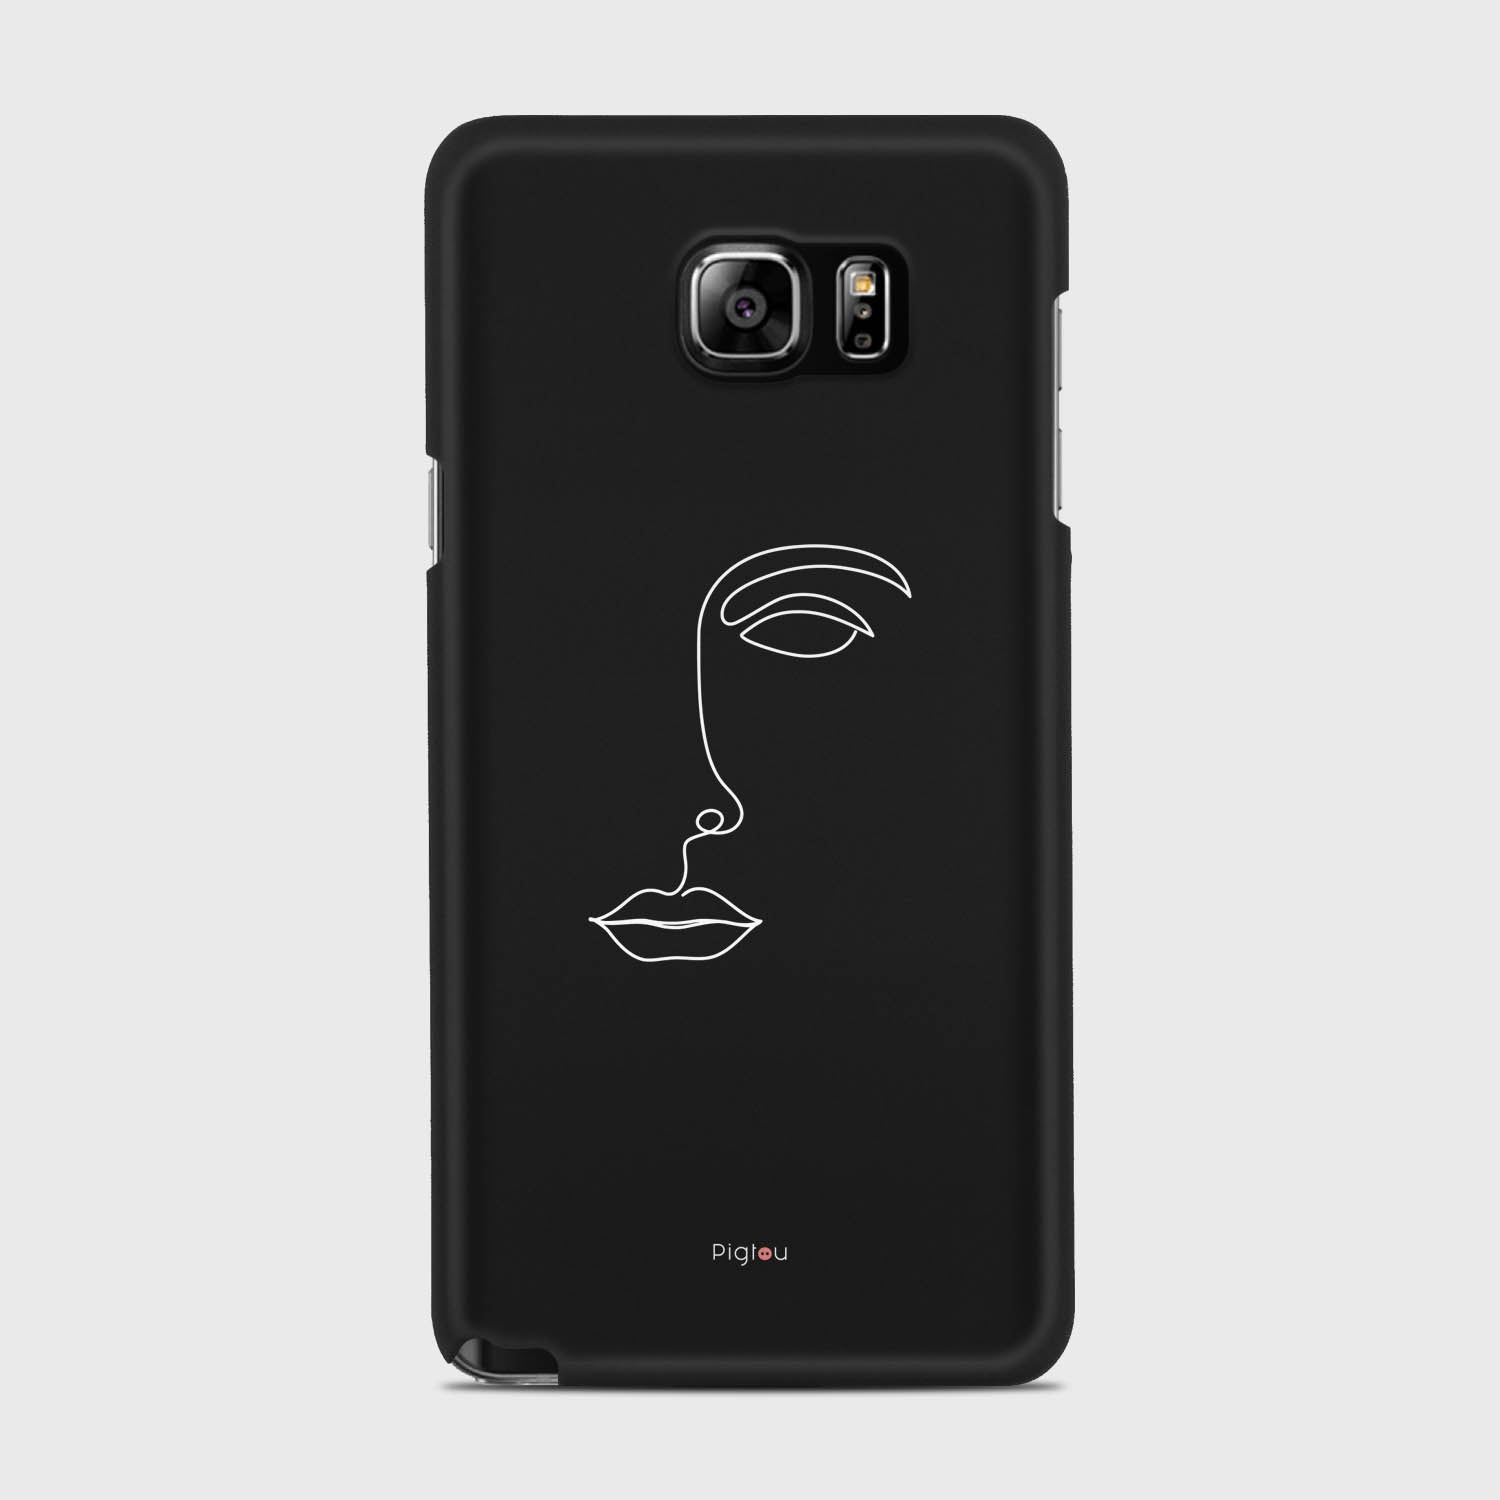 SILHOUETTE FACE Samsung Galaxy Note 5 cases | Pigtou